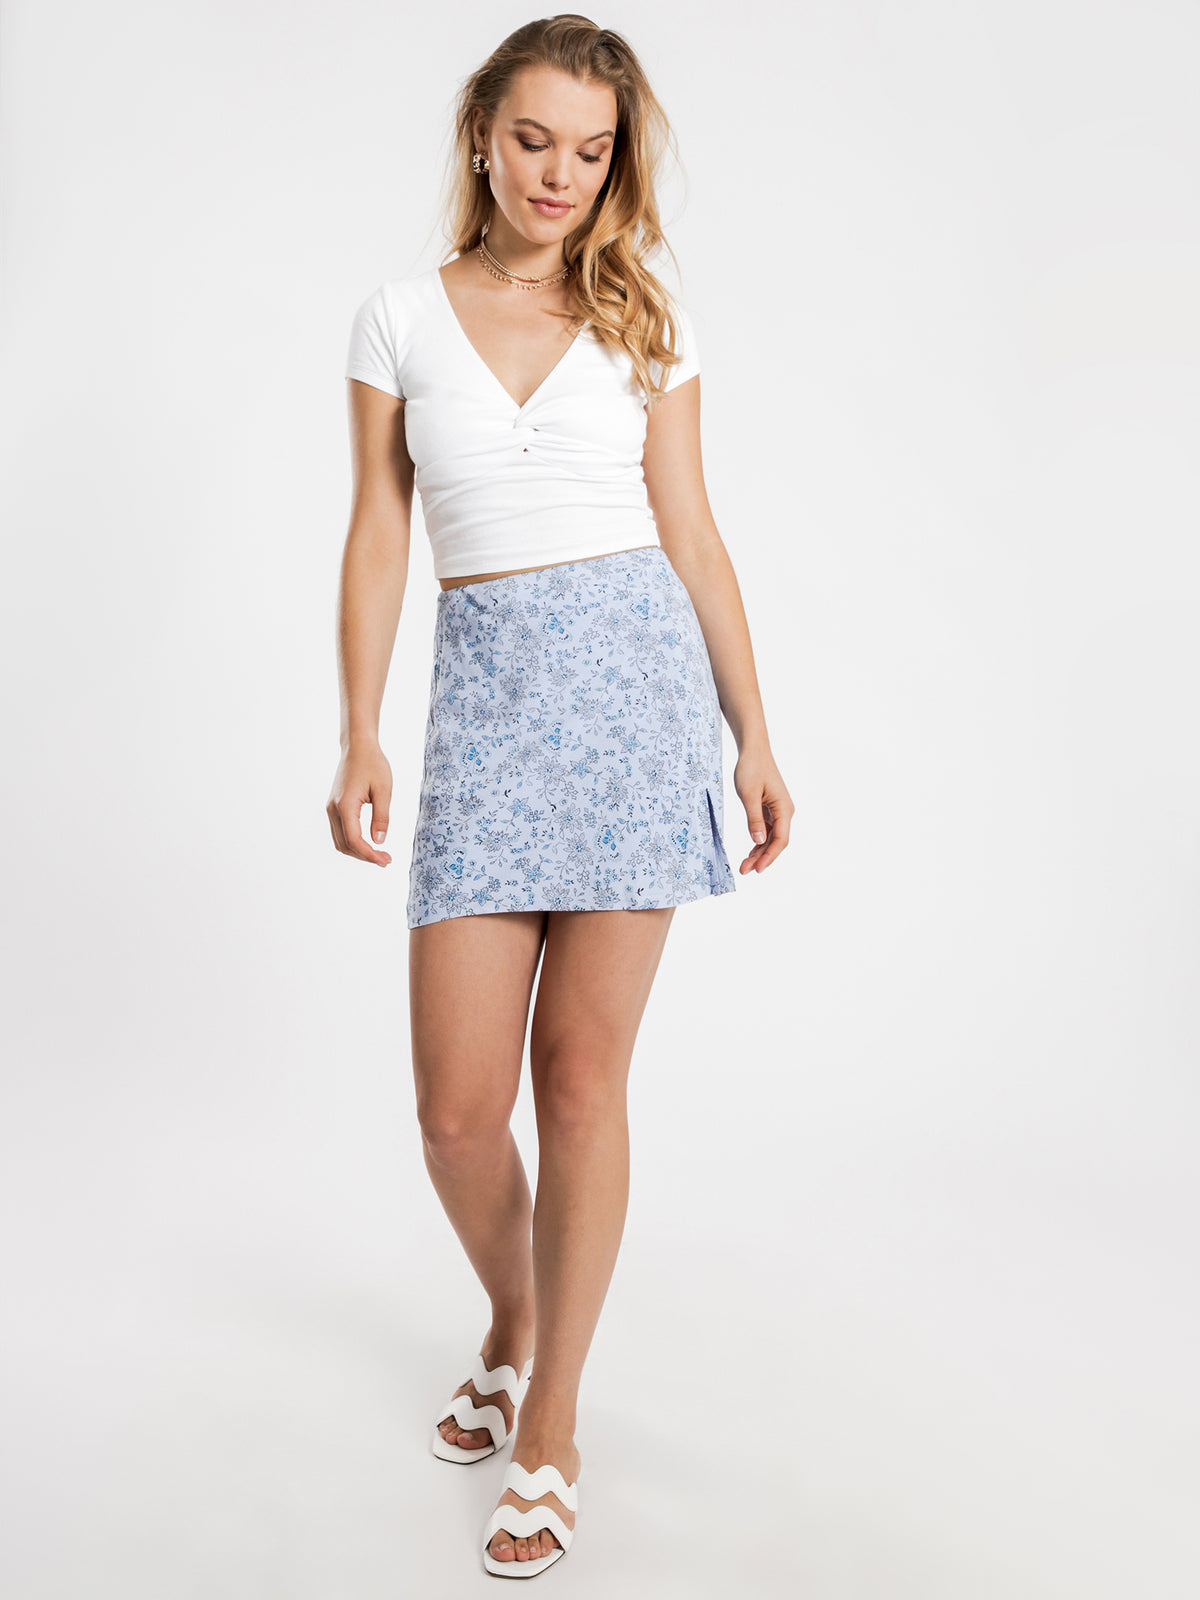 Nala Mini Skirt in Blue